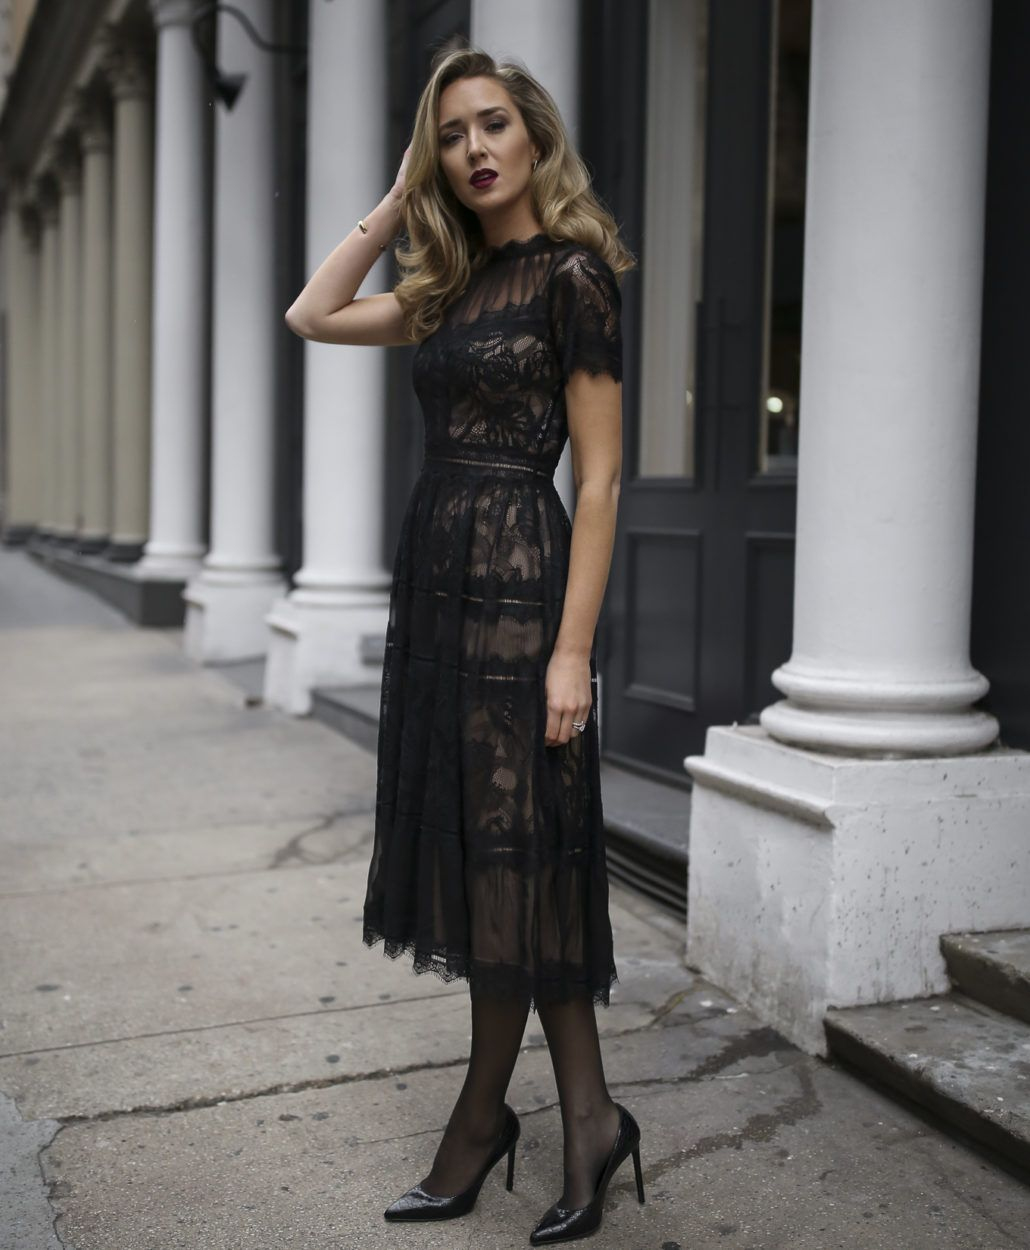 30 Dresses In 30 Days Fall/Winter 2017 Cocktail Wedding